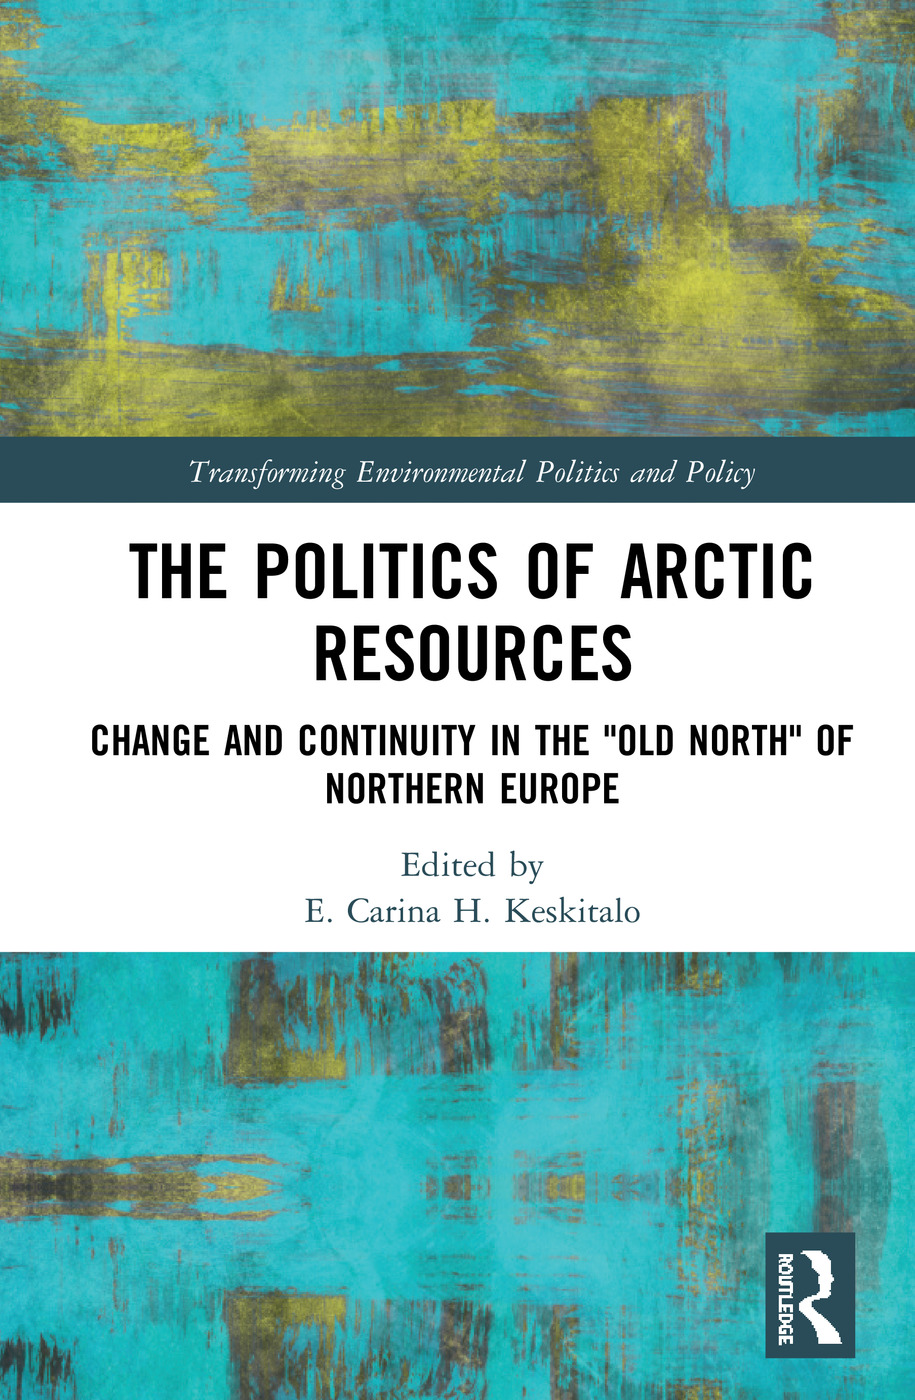 The Politics of Arctic Resources: Change and Continuity in the